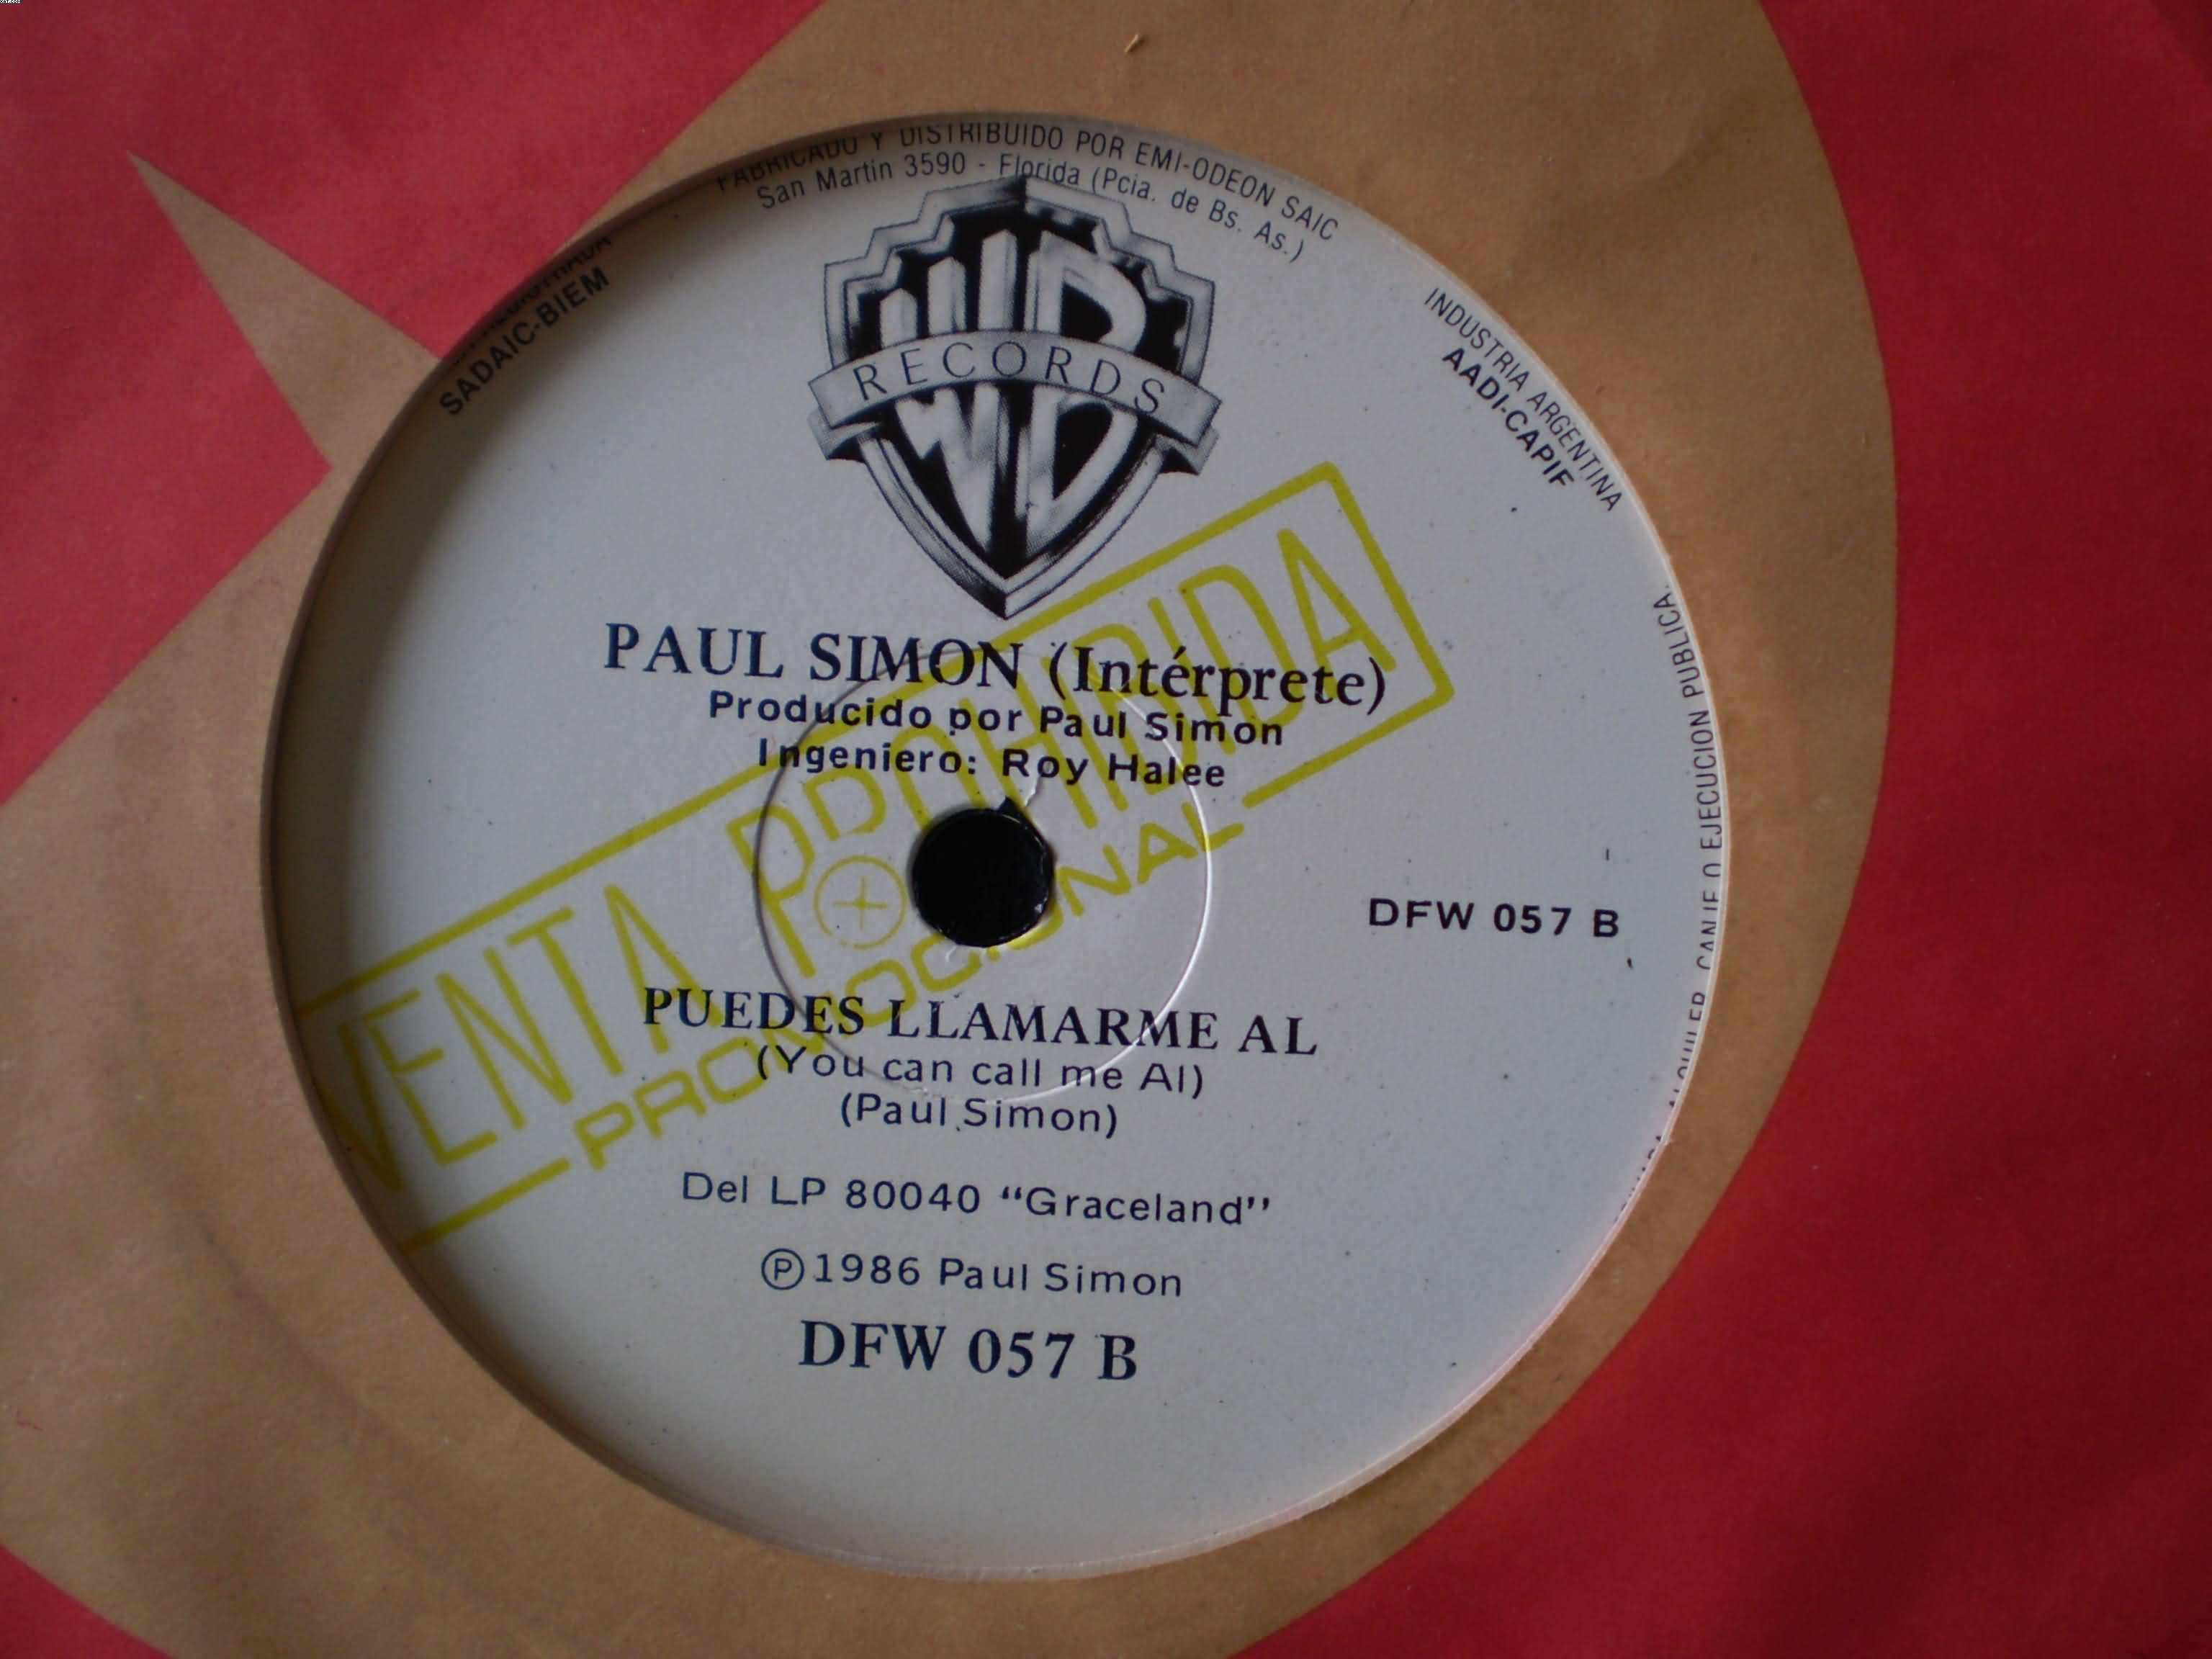 SIMON, PAUL - You Can Call Me Al 4:39/same